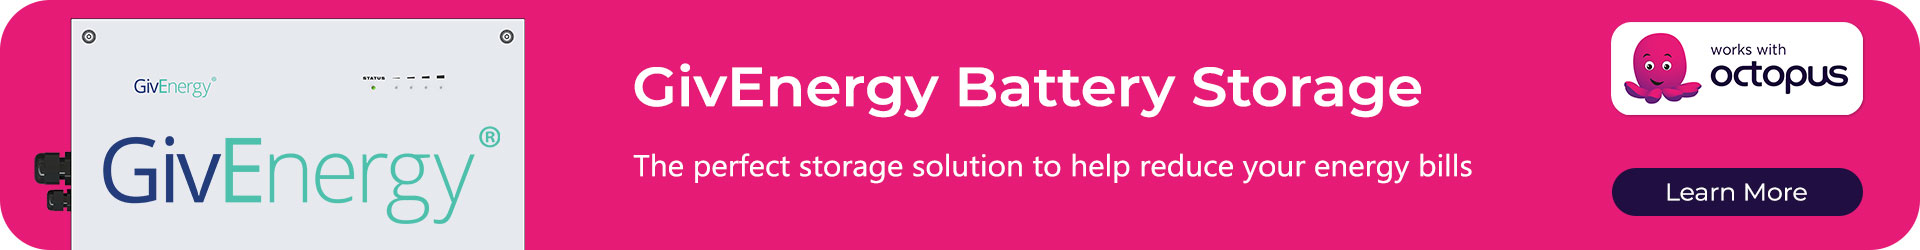 GivEnergy Batteries work with Octopus Energy